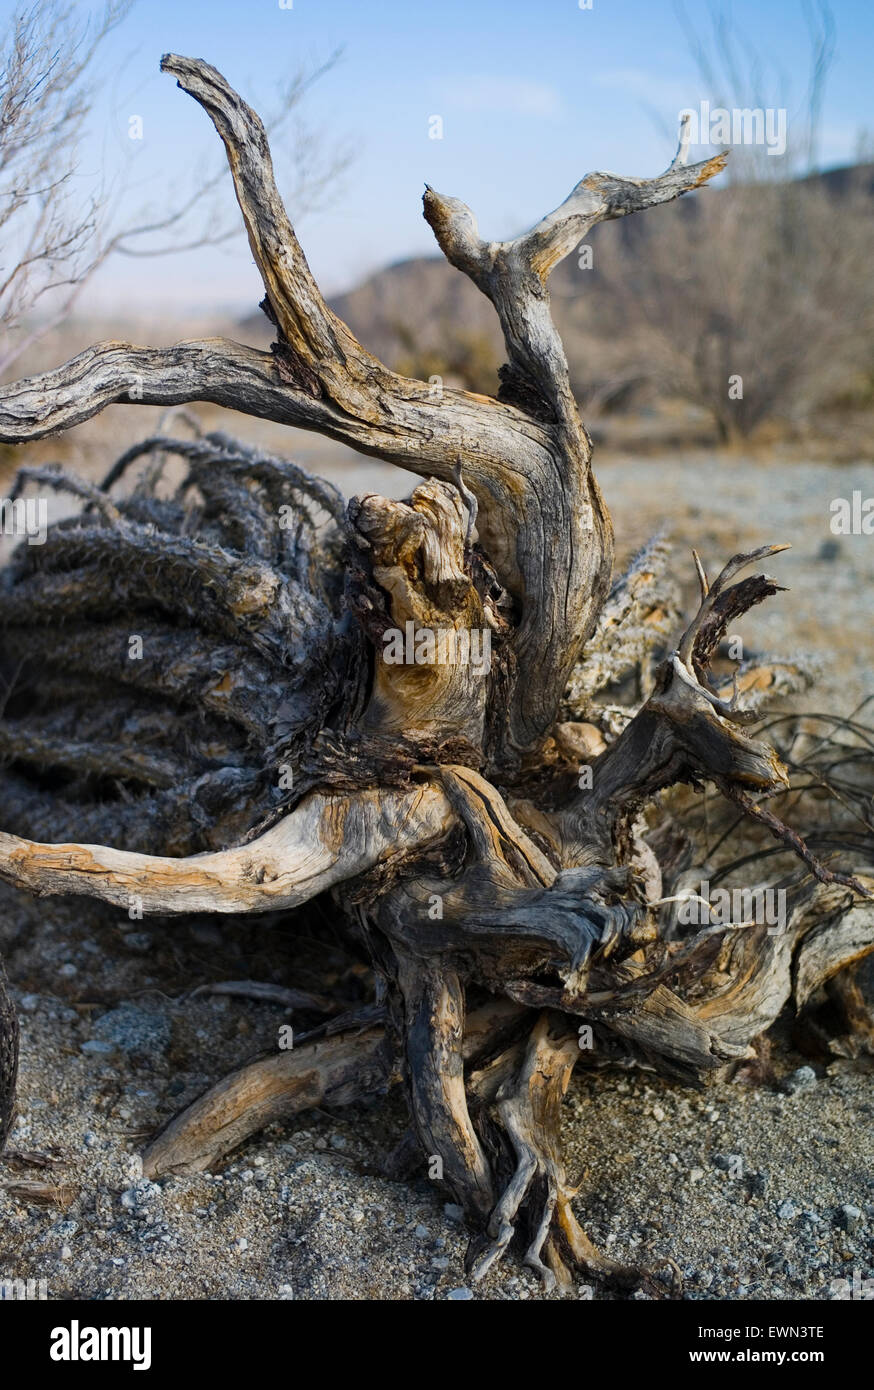 Dead plant and roots, Anza Borrego National Park, California, 2009 - Stock Image